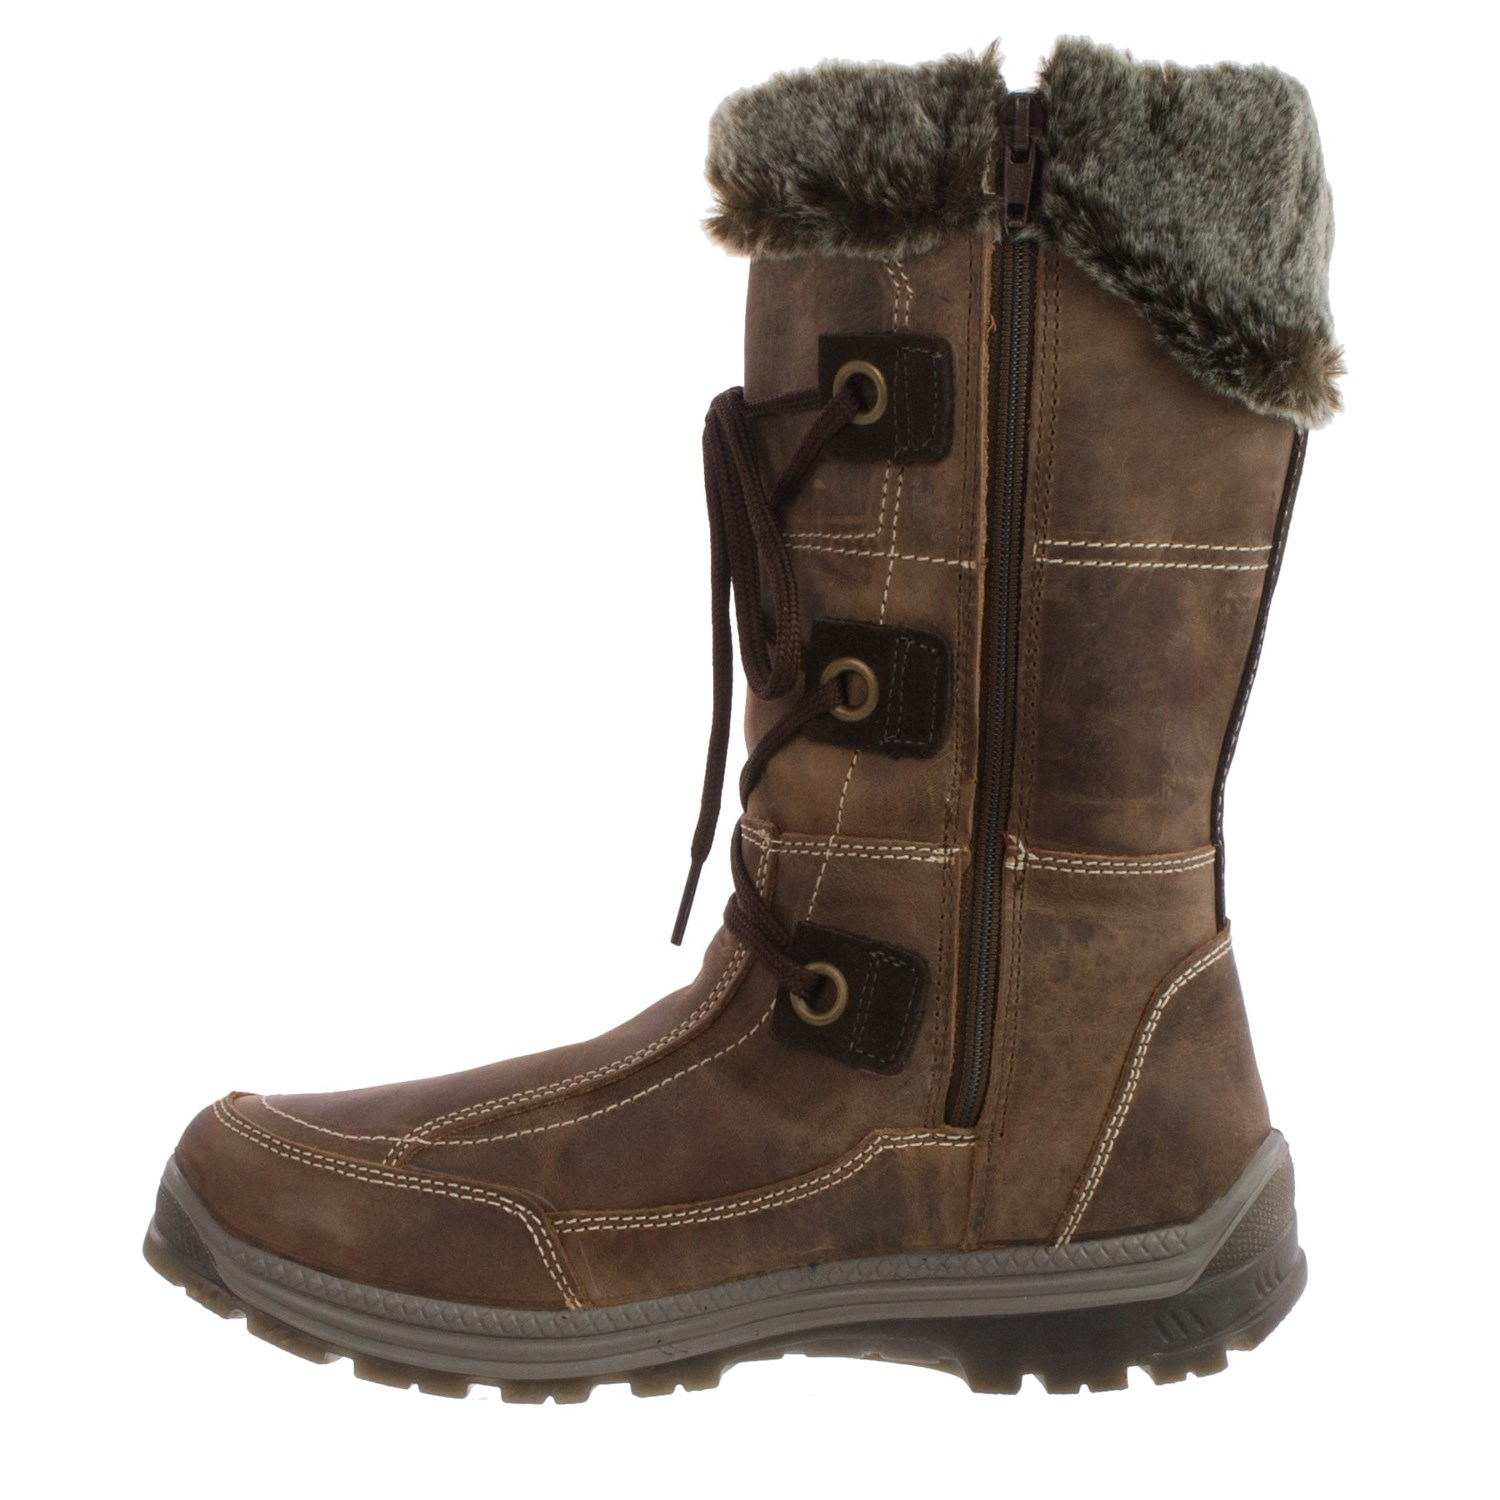 Santana Canada Mendoza Leather Snow Boots (For Women) - Save 79%